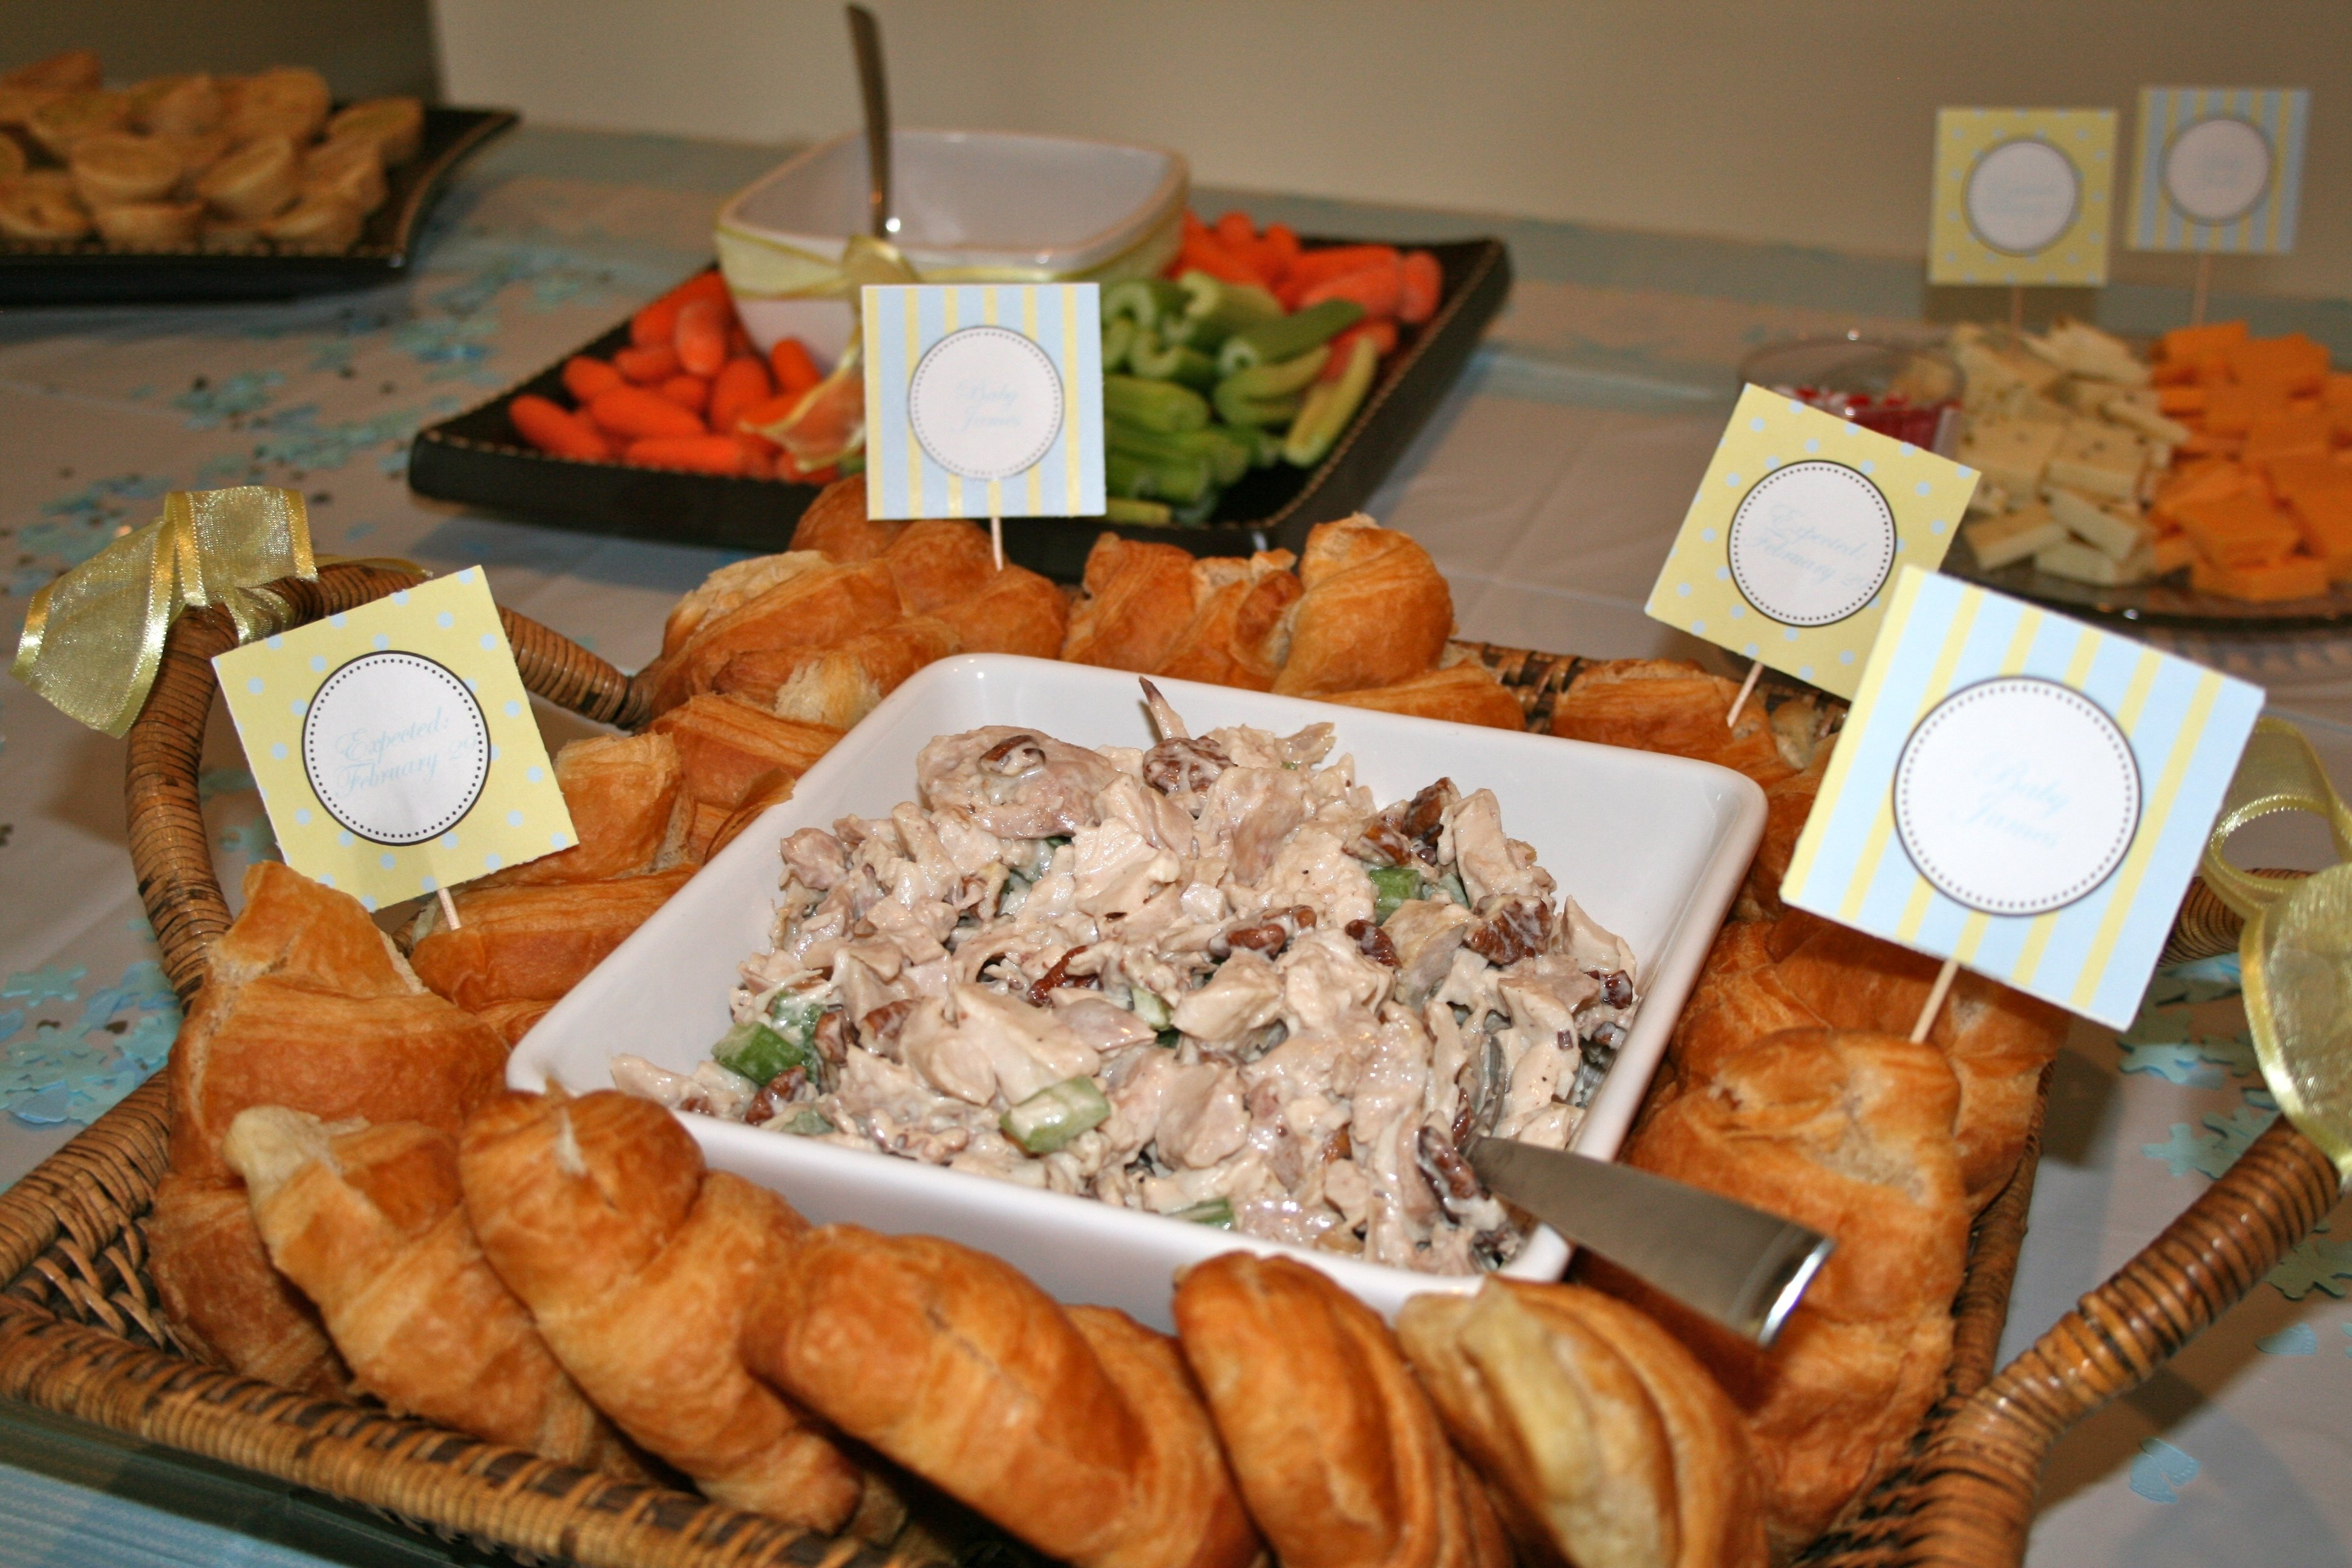 10 Stylish Food Ideas For A Baby Shower babyshowermenuspring 2200x800 baby shower brunch food ideas lunch 2020